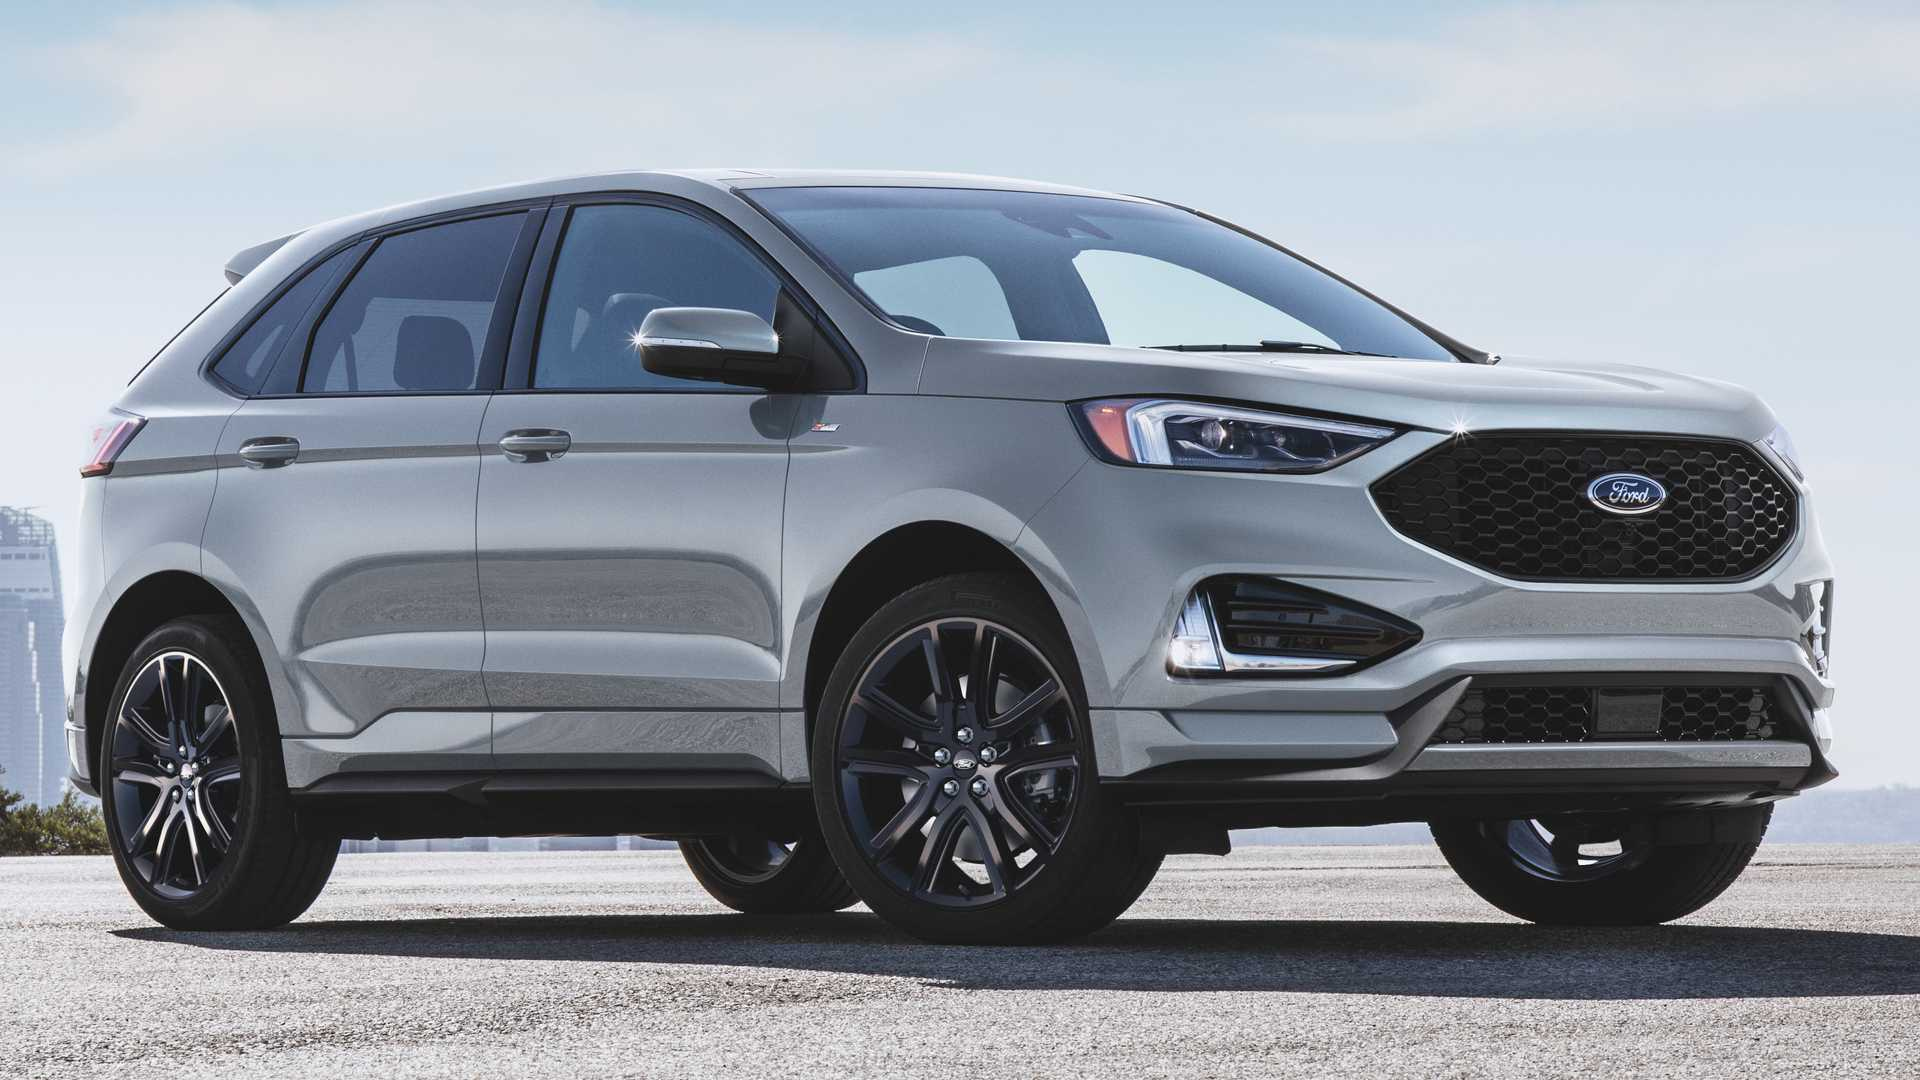 2020 Ford Edge St-Line Offers Sporty Looks With Standard Engine